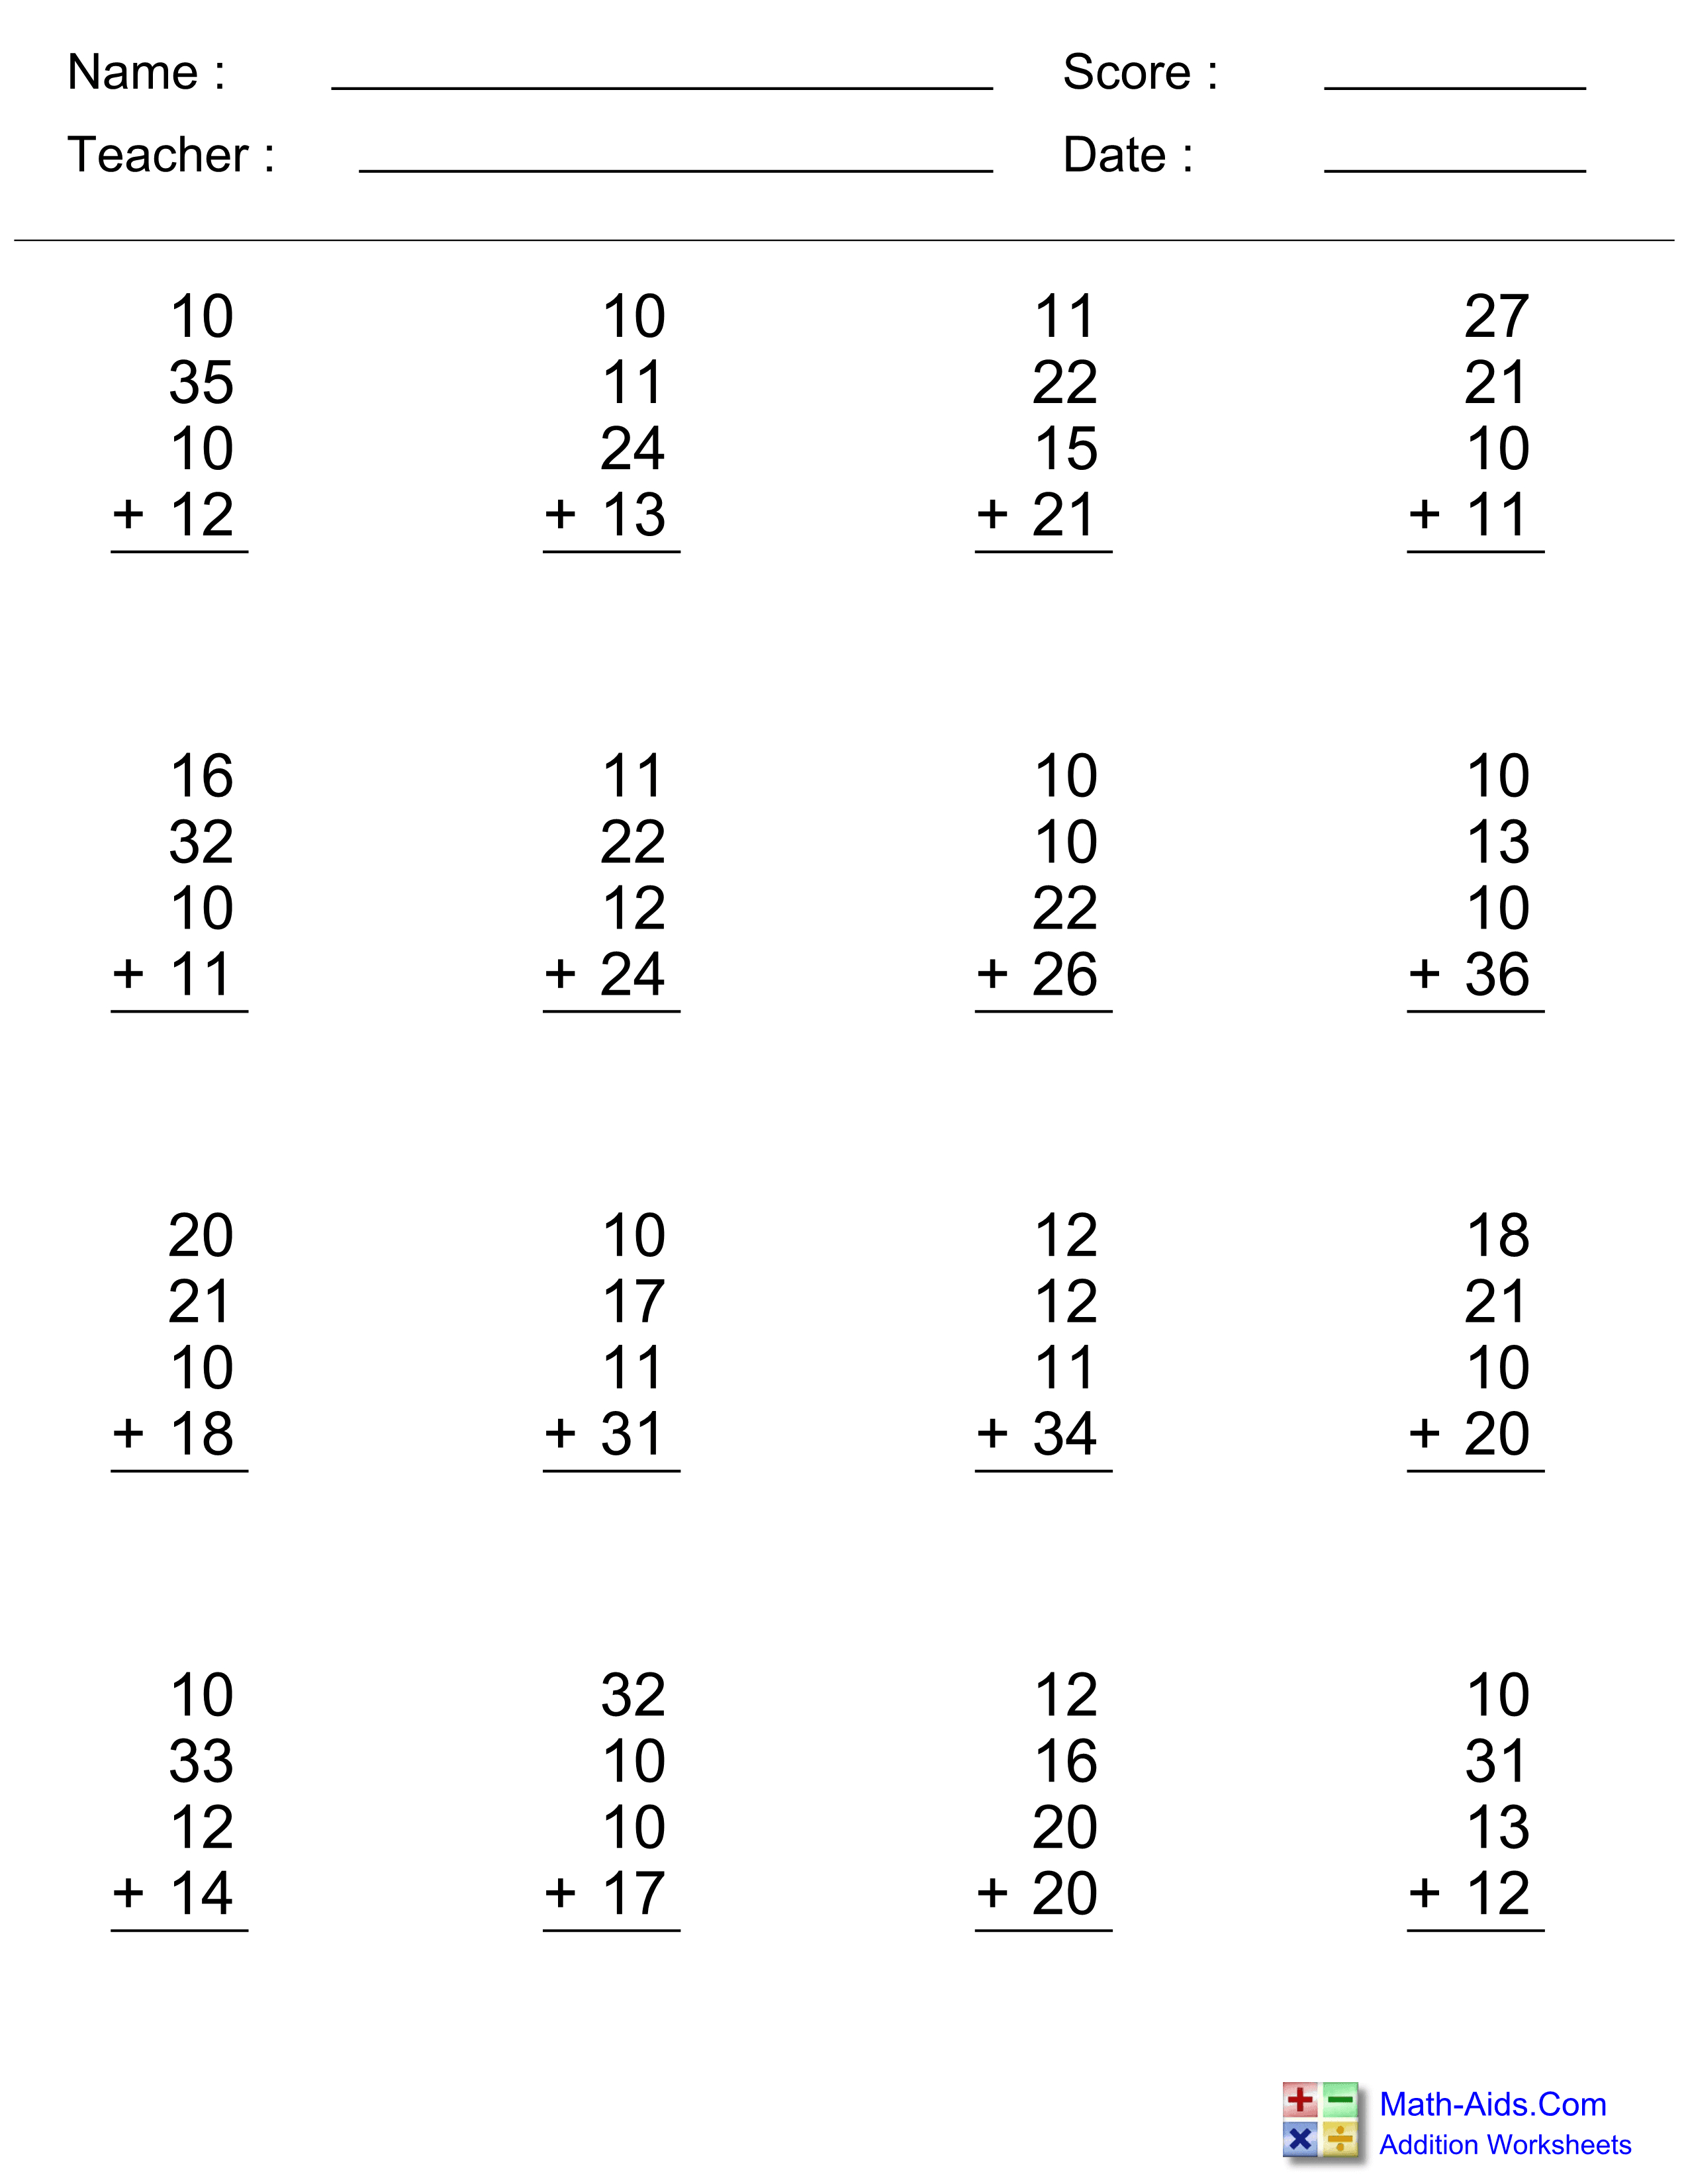 Addition Worksheets | Dynamically Created Addition Worksheets - Free Printable Two Digit Addition Worksheets